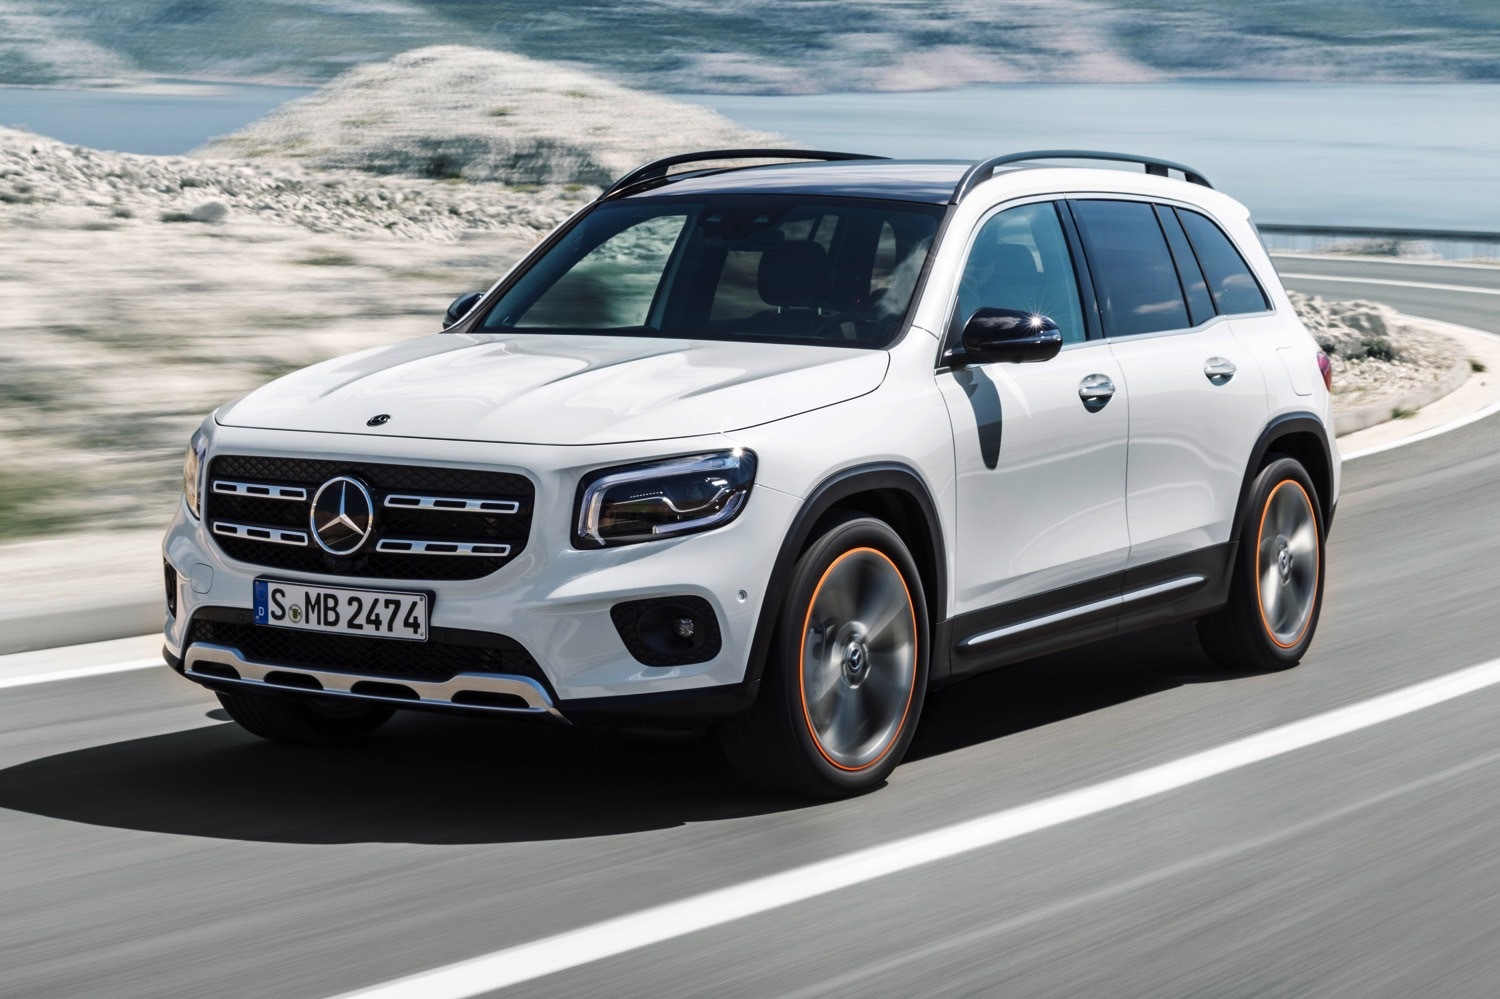 Salon De Francfort 2019 Mercedes Glb Chainon Manquant